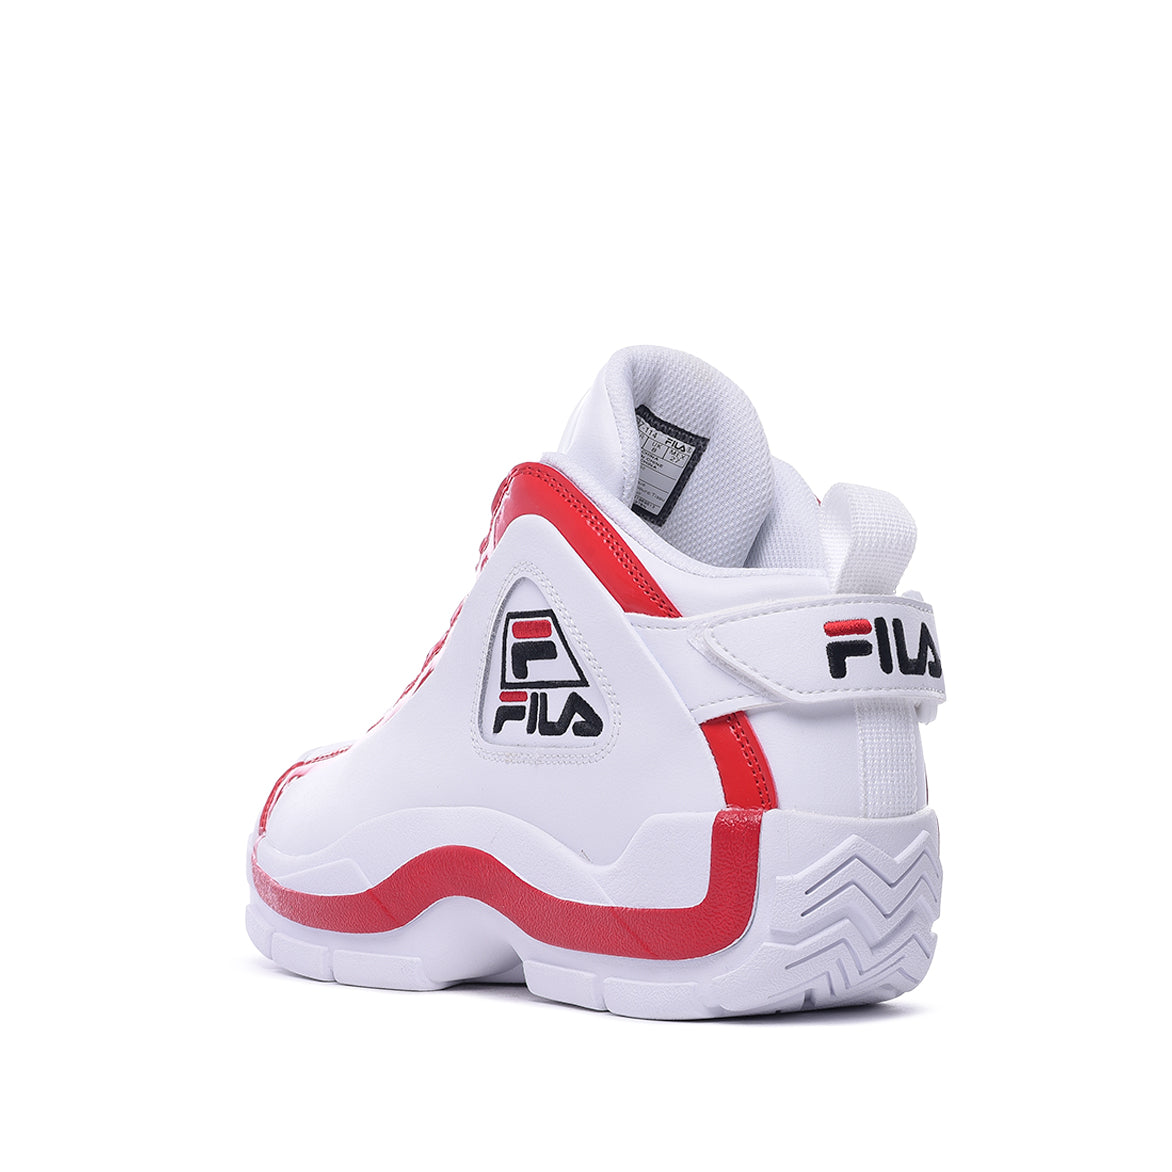 GRANT HILL 2 - WHITE / RED / BLACK